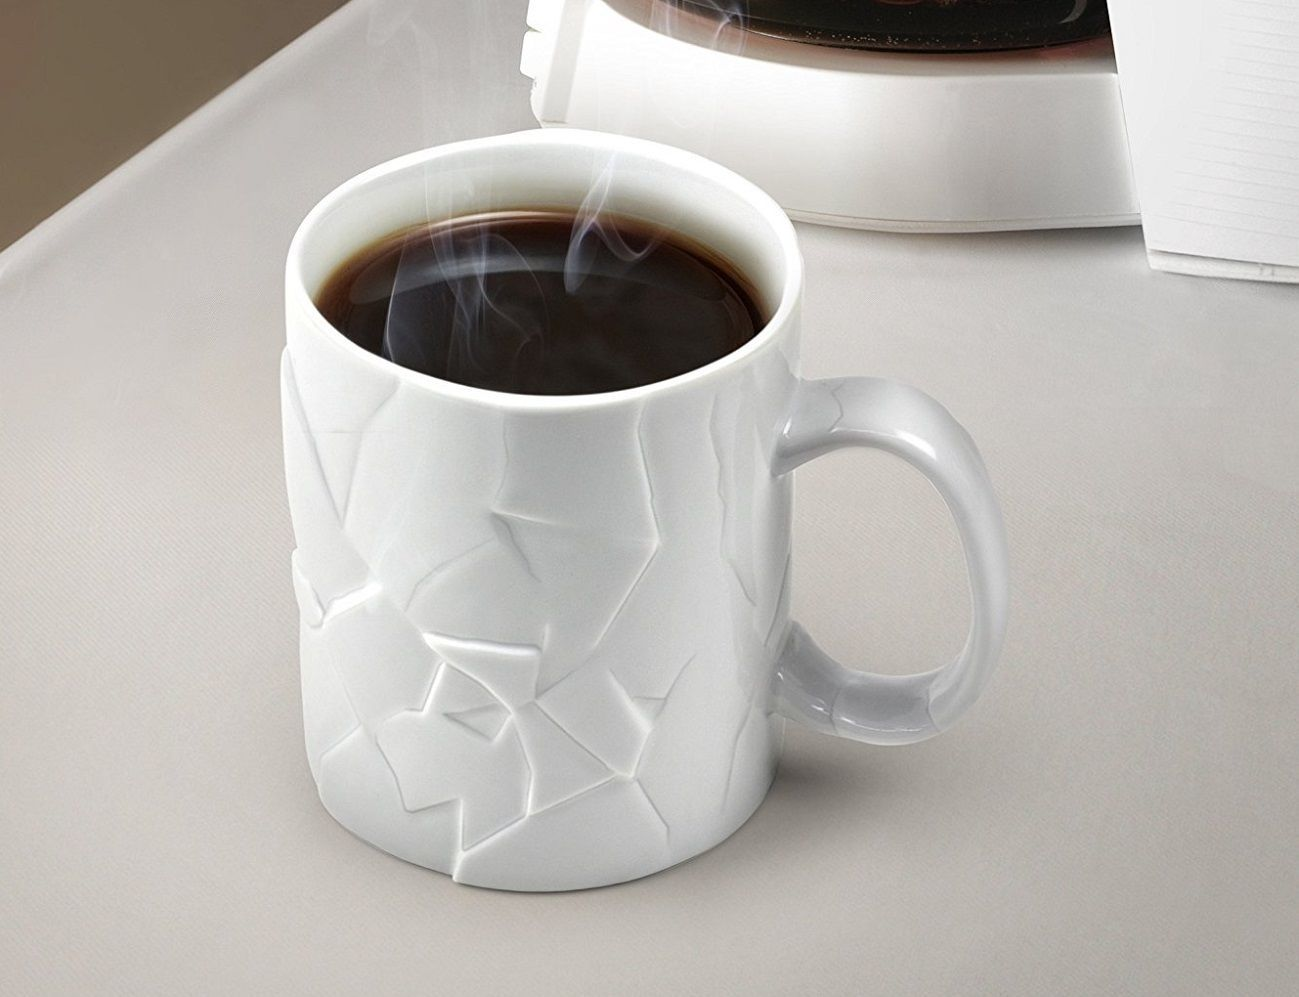 fred and friends cracked up mug 187 gadget flow